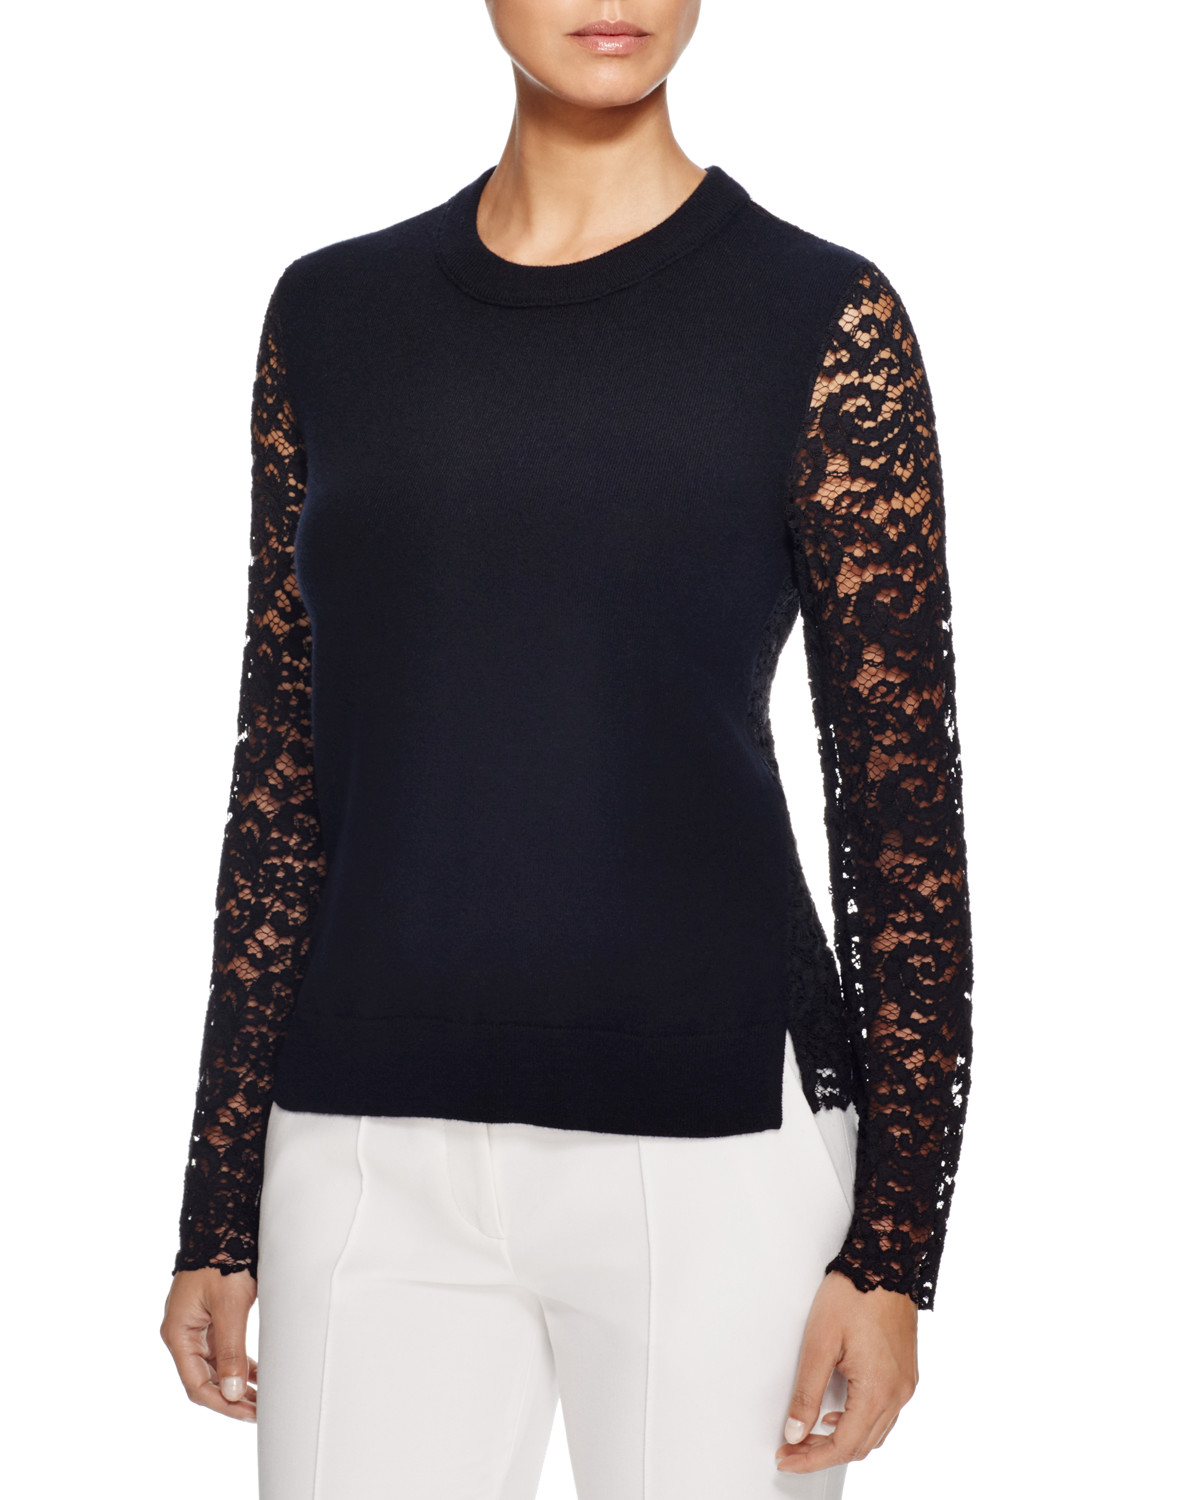 Tory Burch mixed media sweater image: bloomingdale's and bloomingdales.com